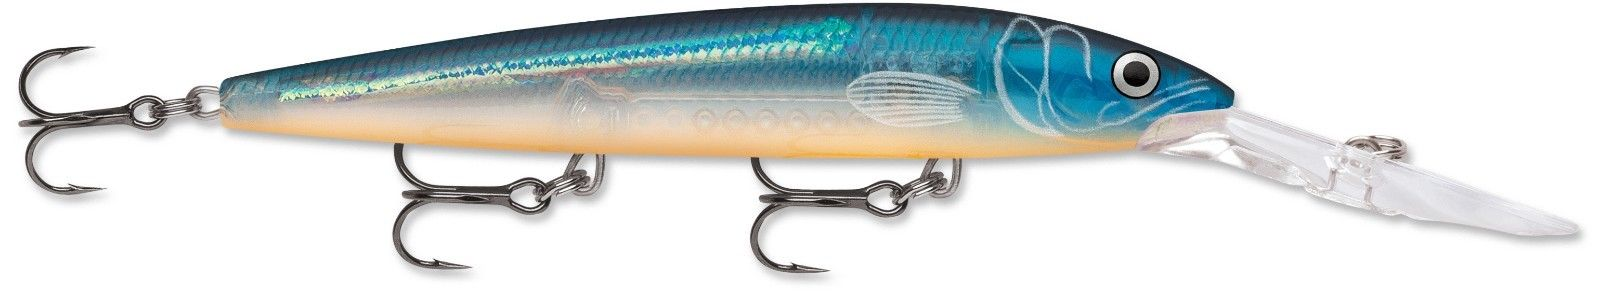 Rapala Down Deep Husky Jerk 12 Deep Diving Jerkbait Blue Ghost